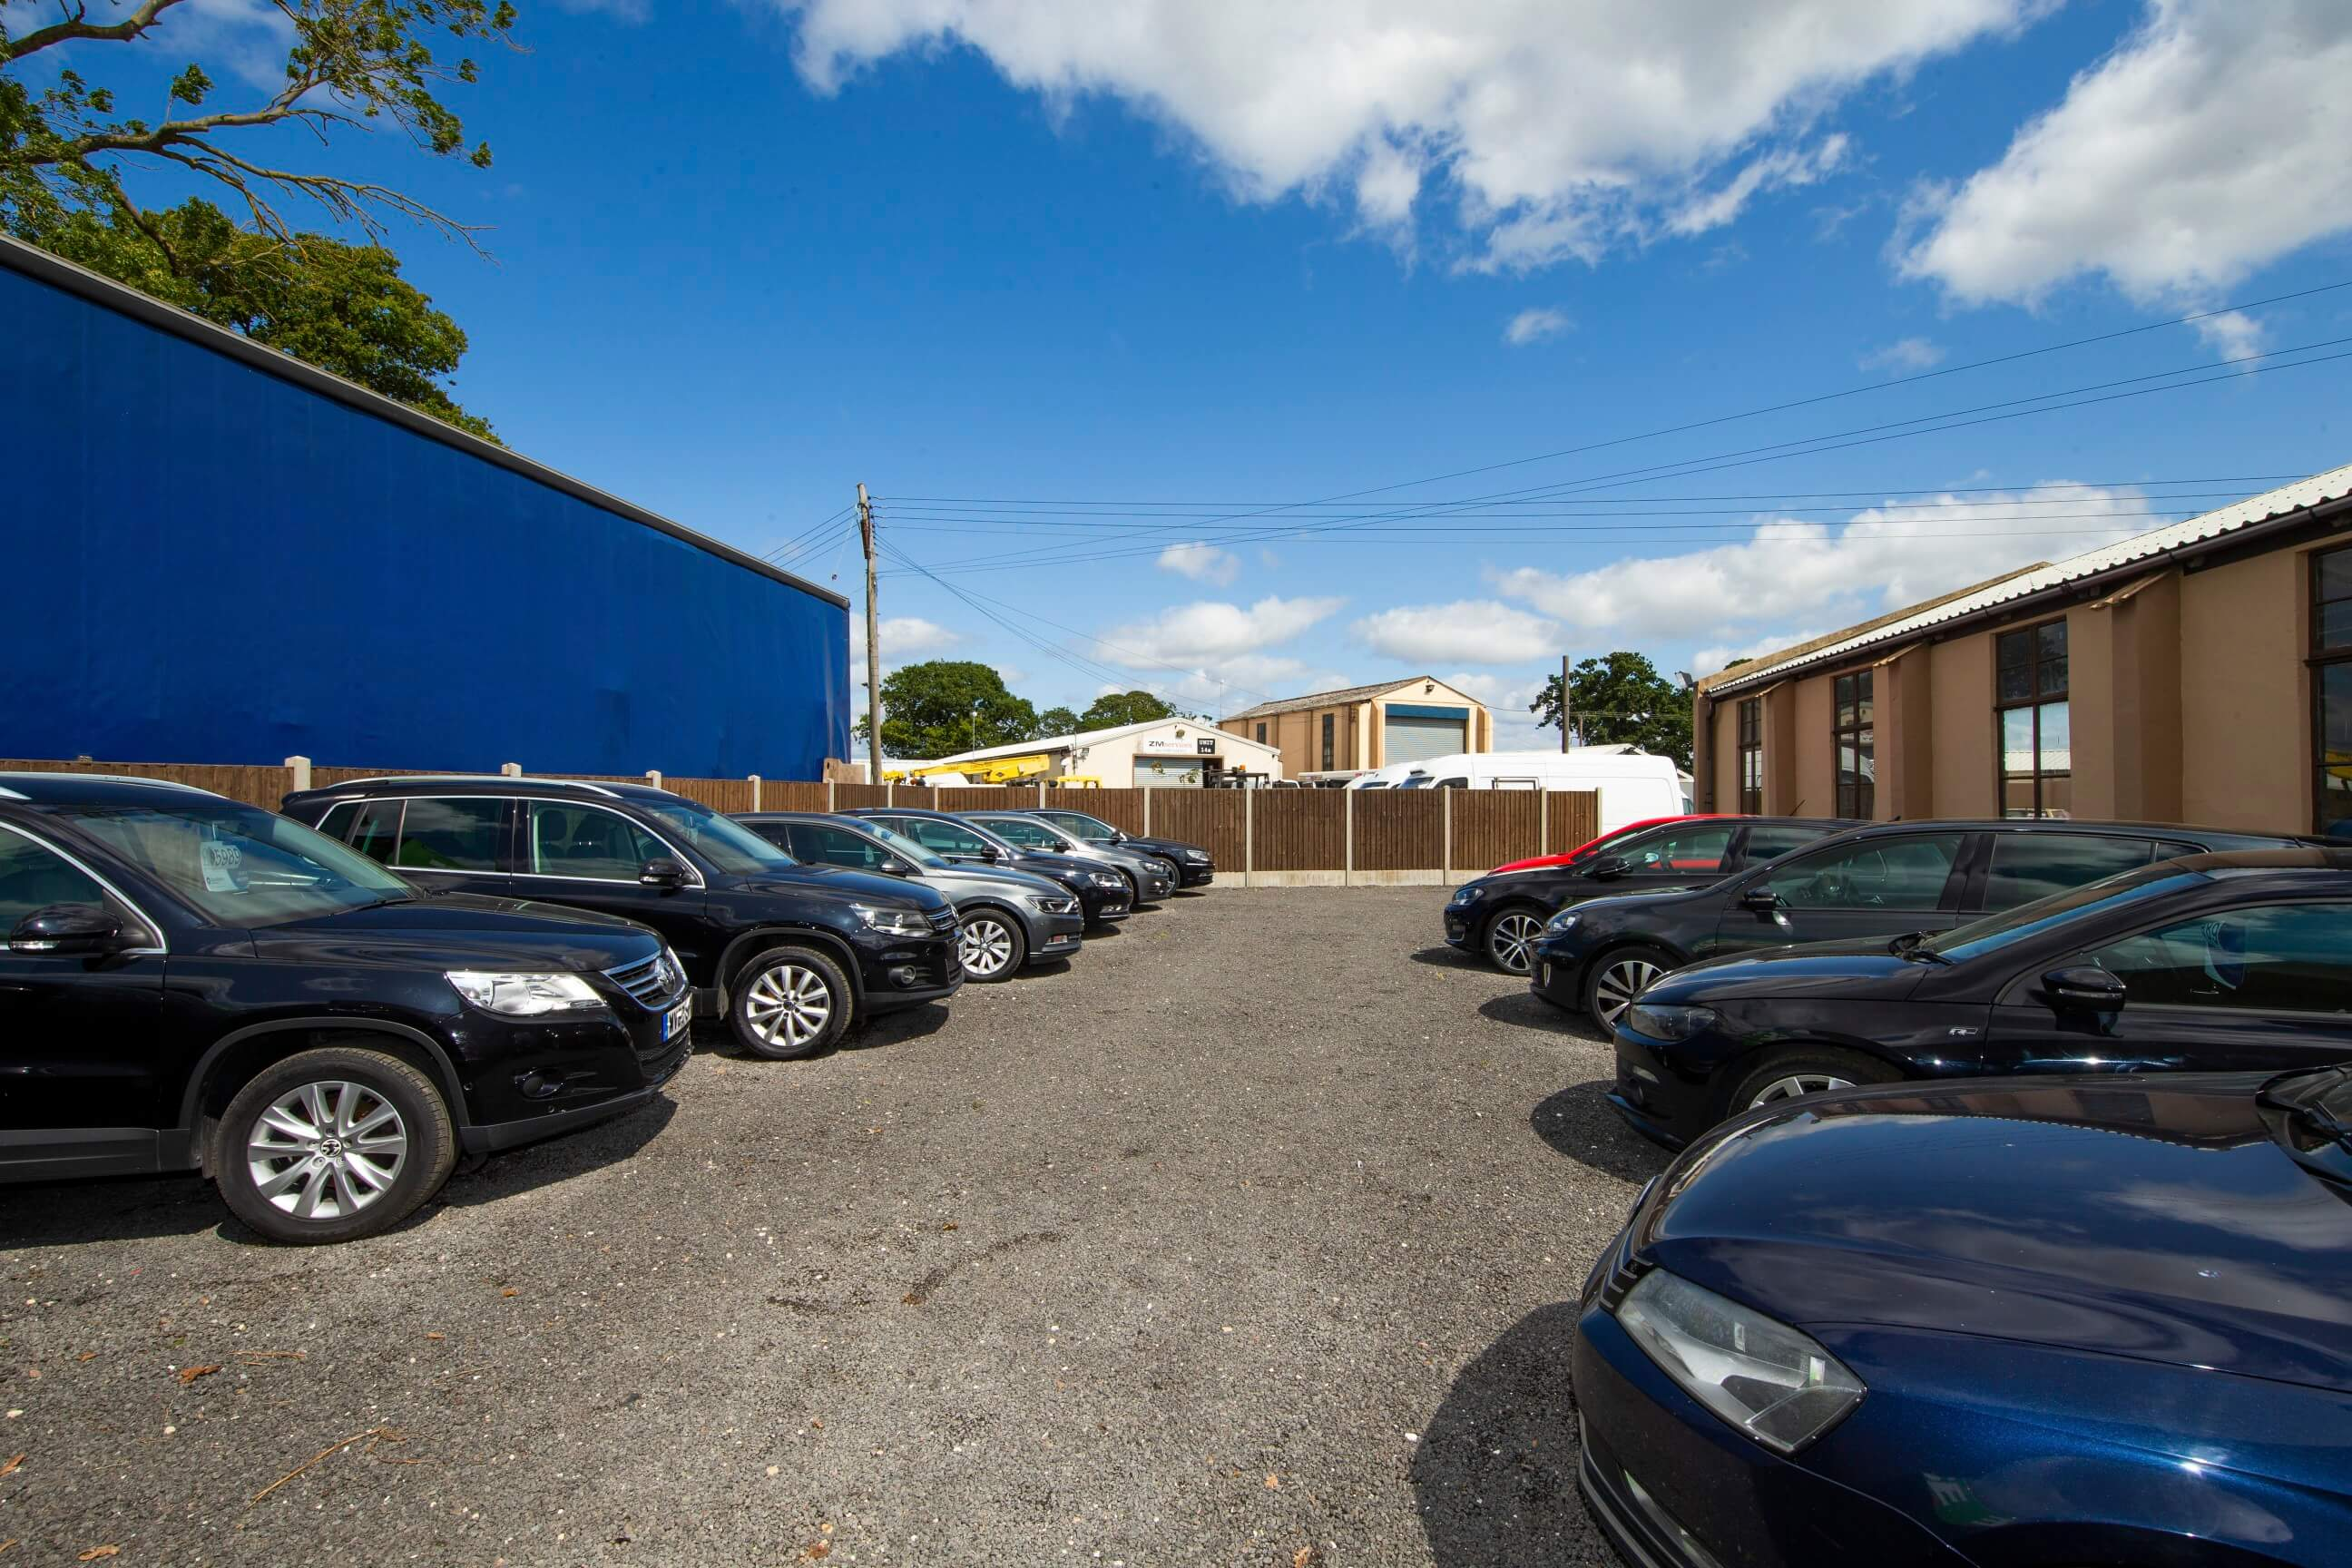 View Our Stock Used Cars For Sale In Evesham - Gold Cars Ltd